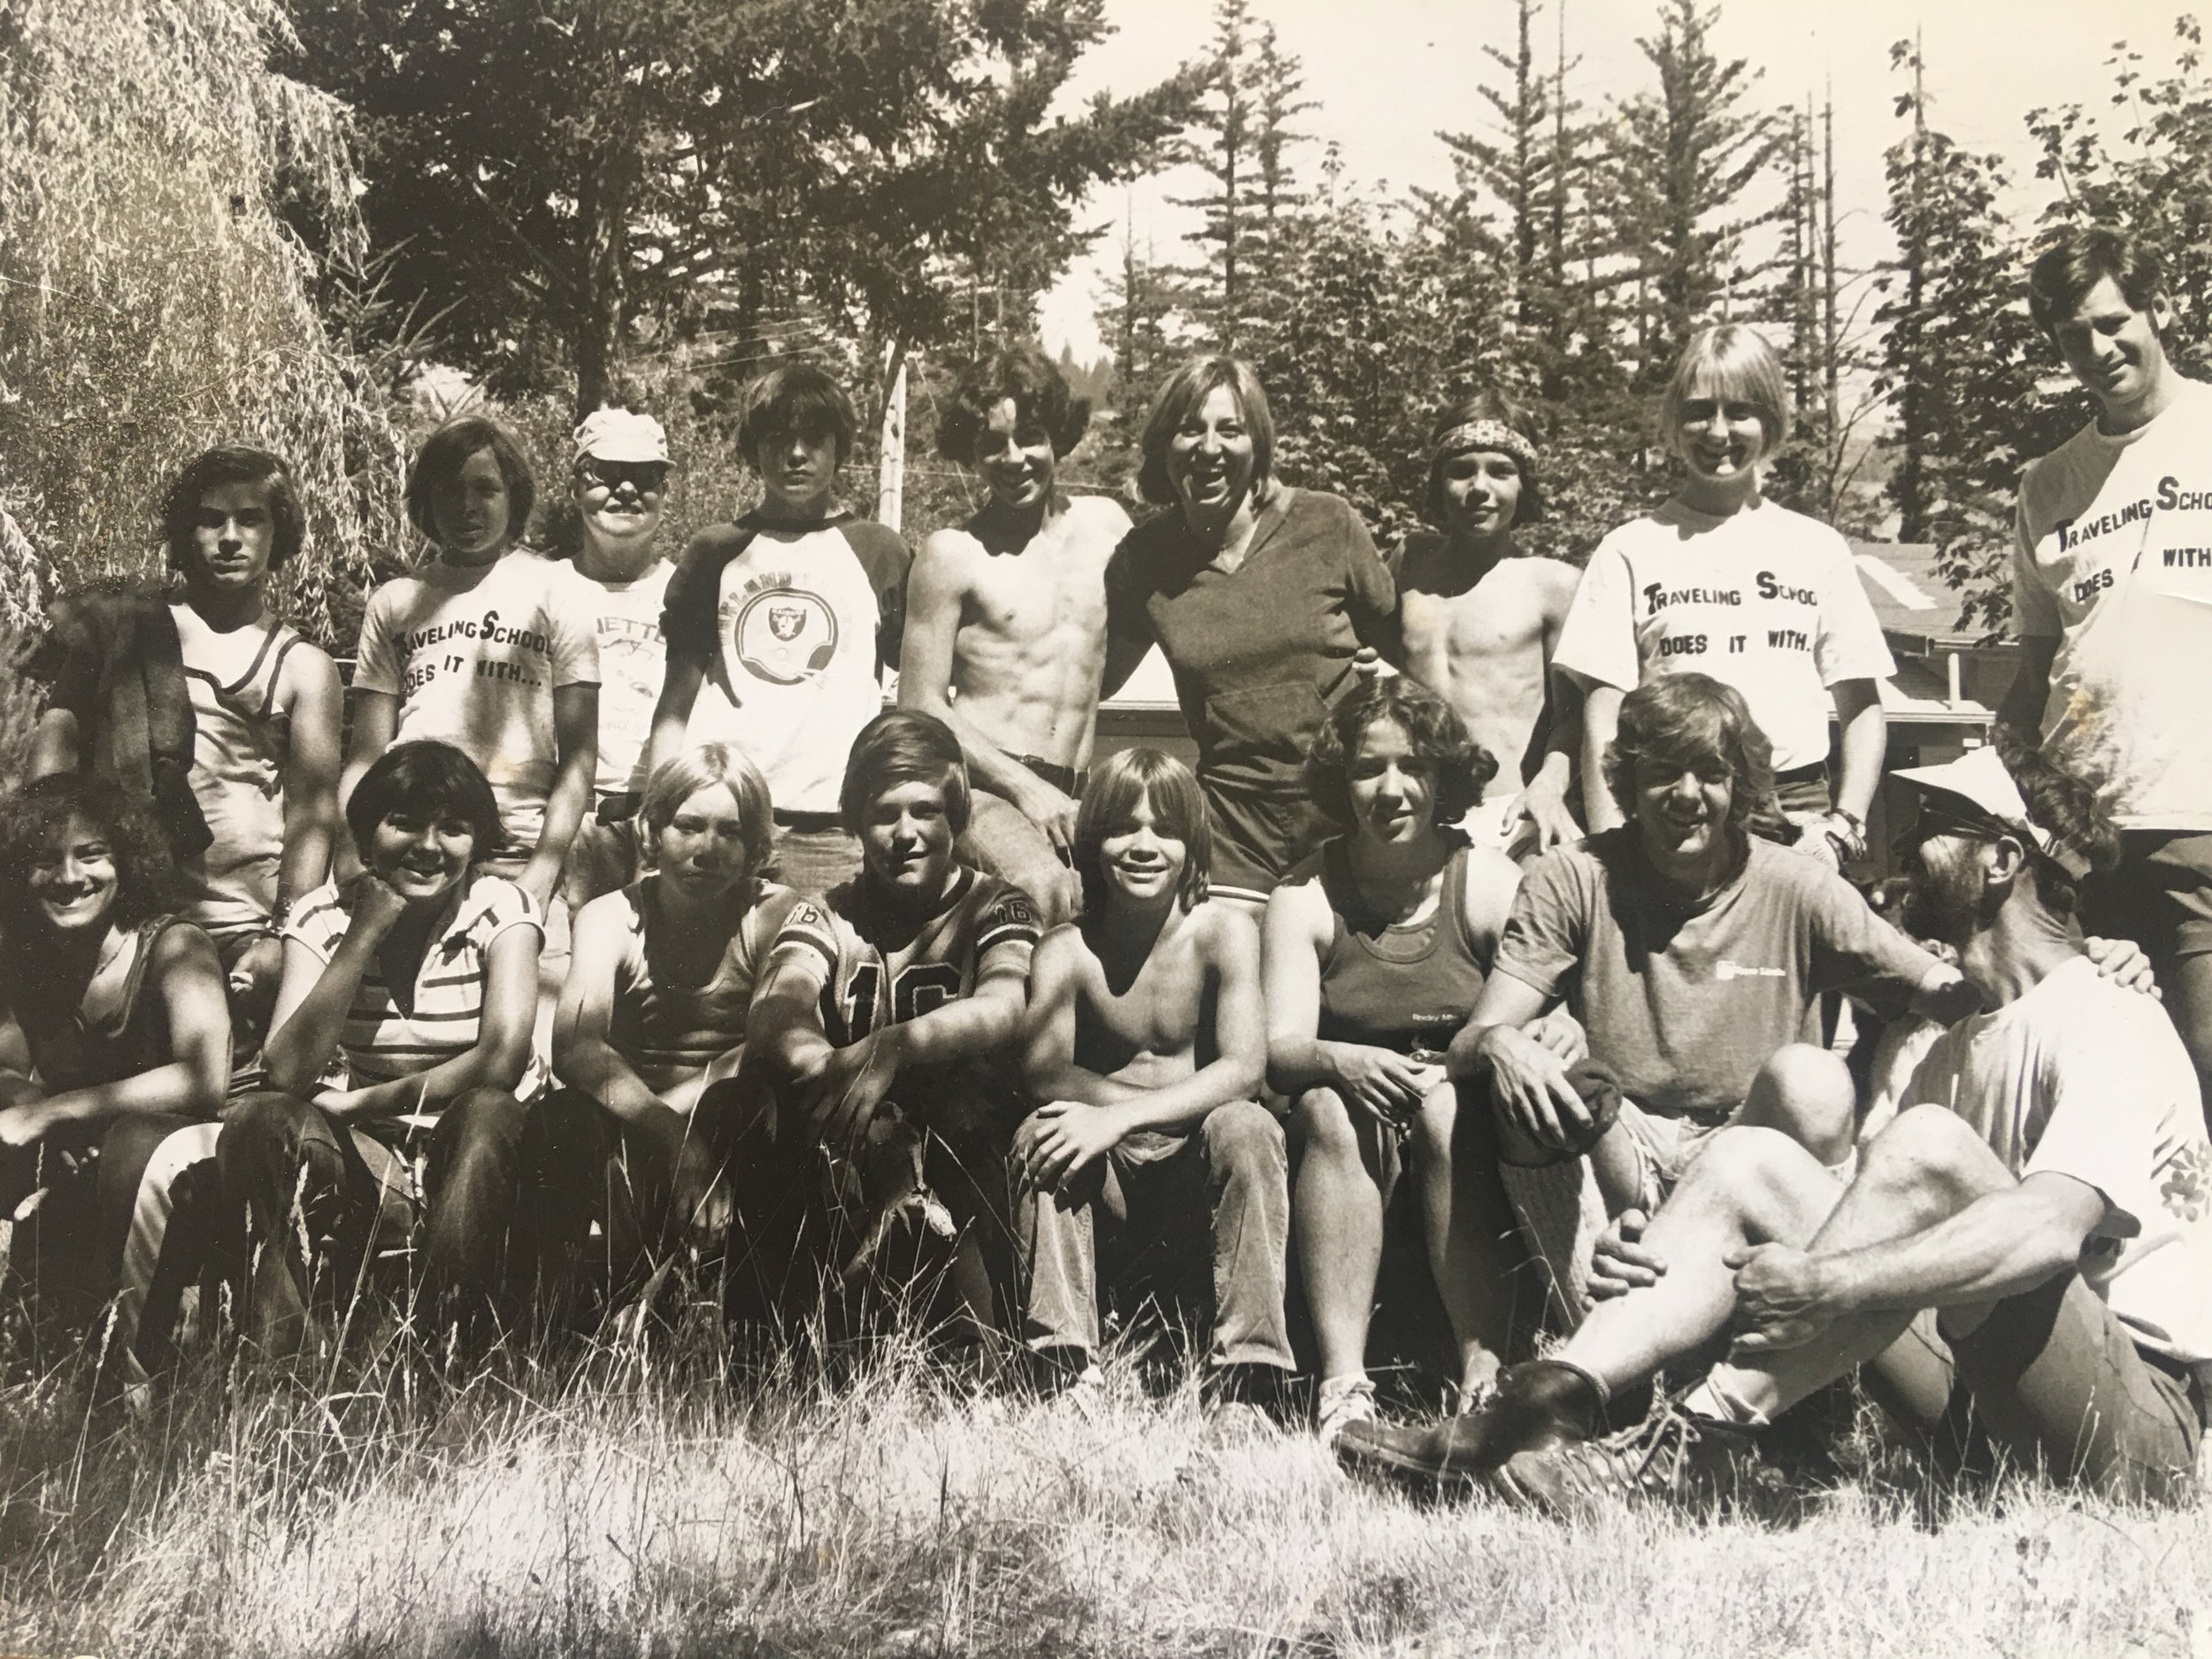 Three boys in this photo later reported child sexual abuse by Myers/Jackson who is standing at far right.  Traveling School Summer Bicycle Tour 1978